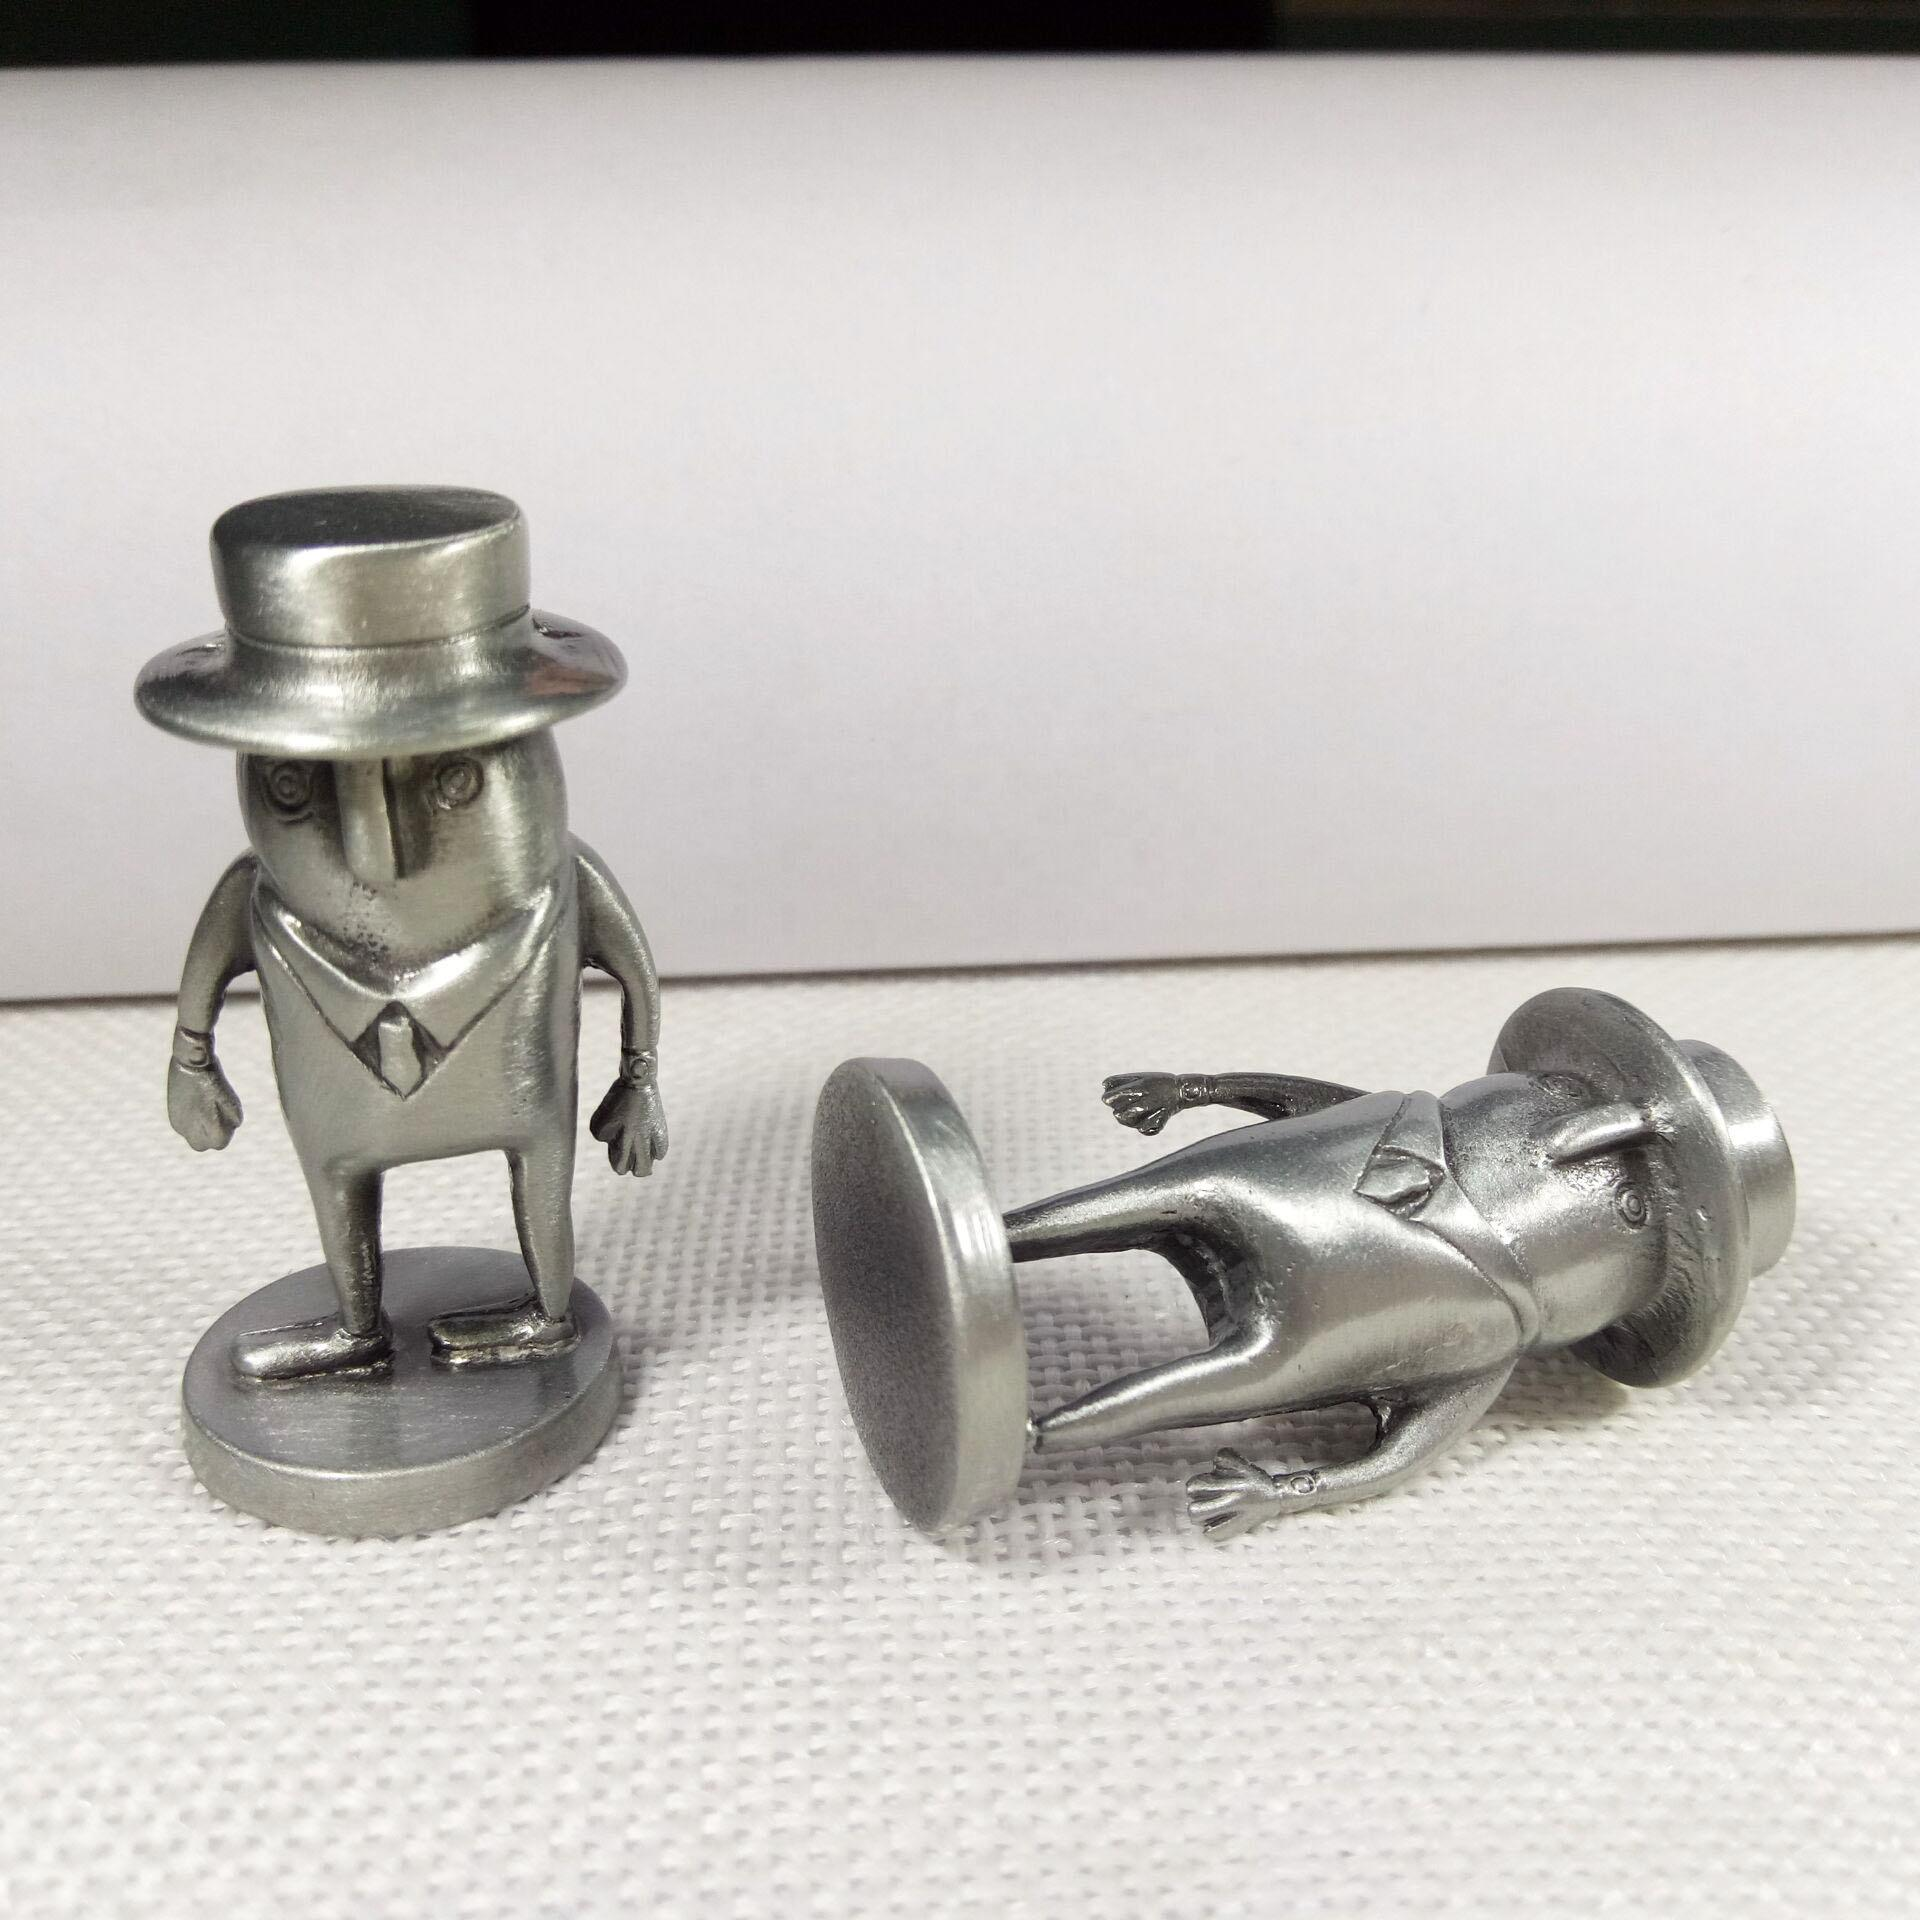 Antique silver alloy 3d metal sculpture japan cartoon character figure for home decoration